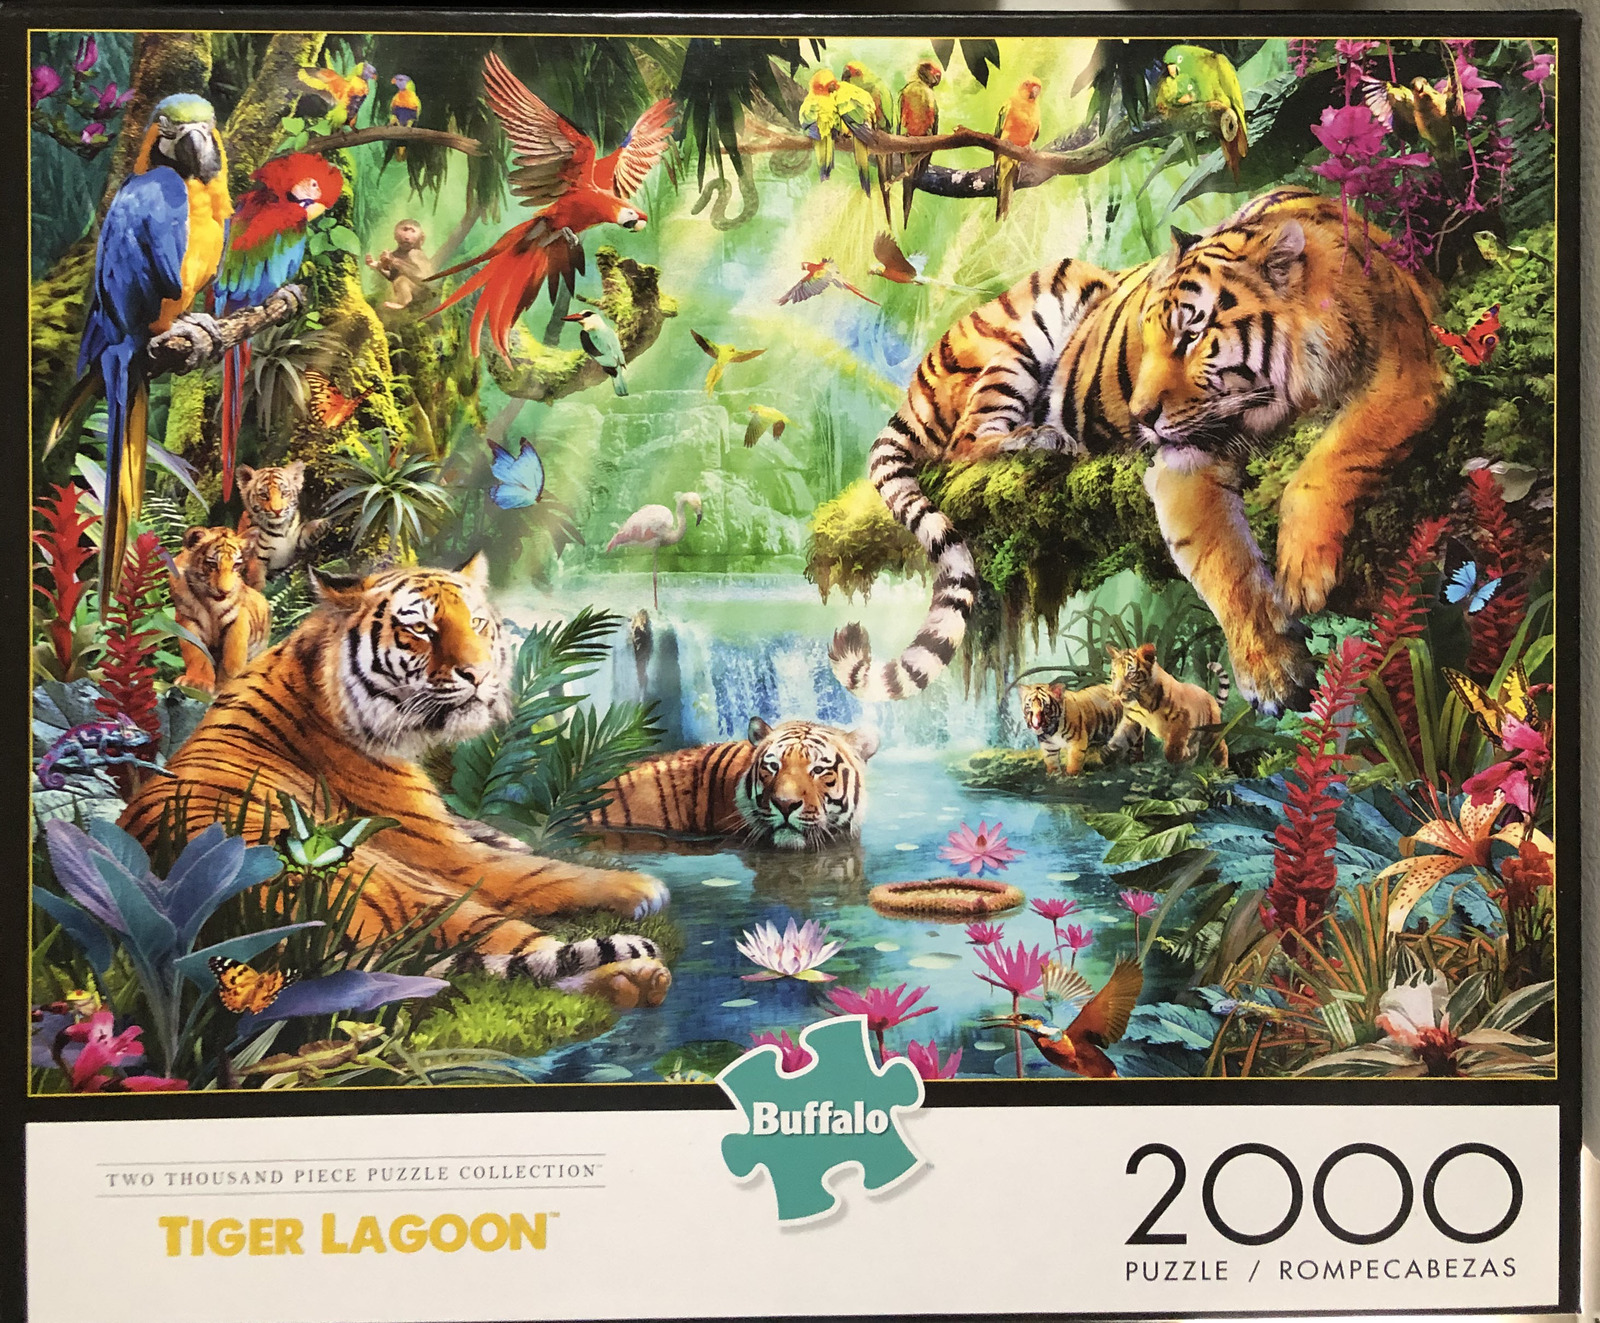 Buffalo Games Jigsaw Puzzle Tiger Lagoon 2000 Pieces 38.5 x 26.5 in. with Poster